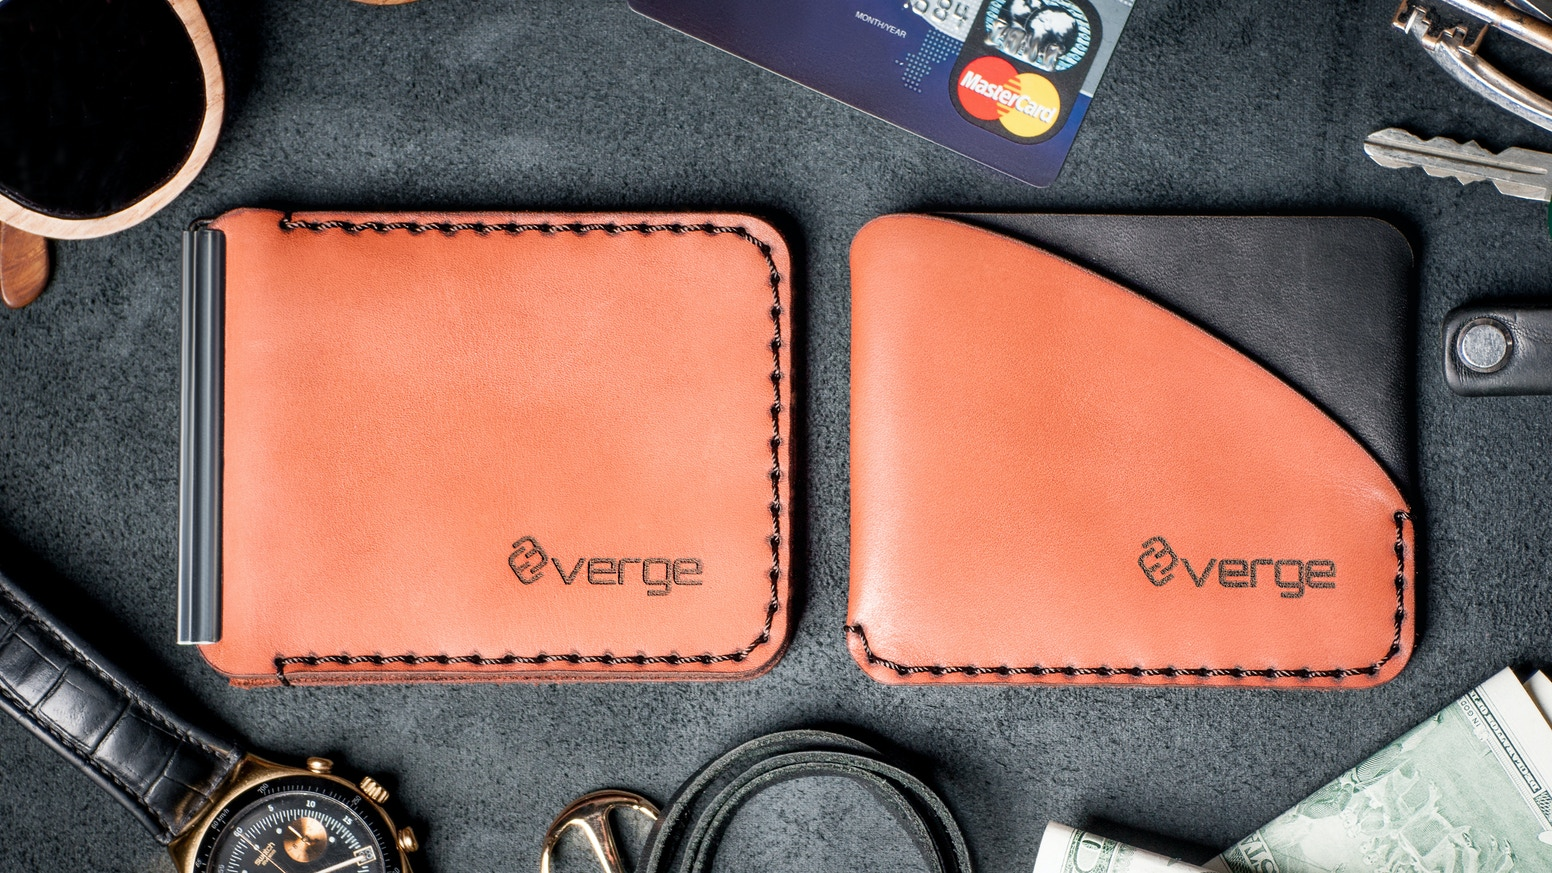 Minimalistic slope wallet and ascet money clip will become a new place for your cash and cards